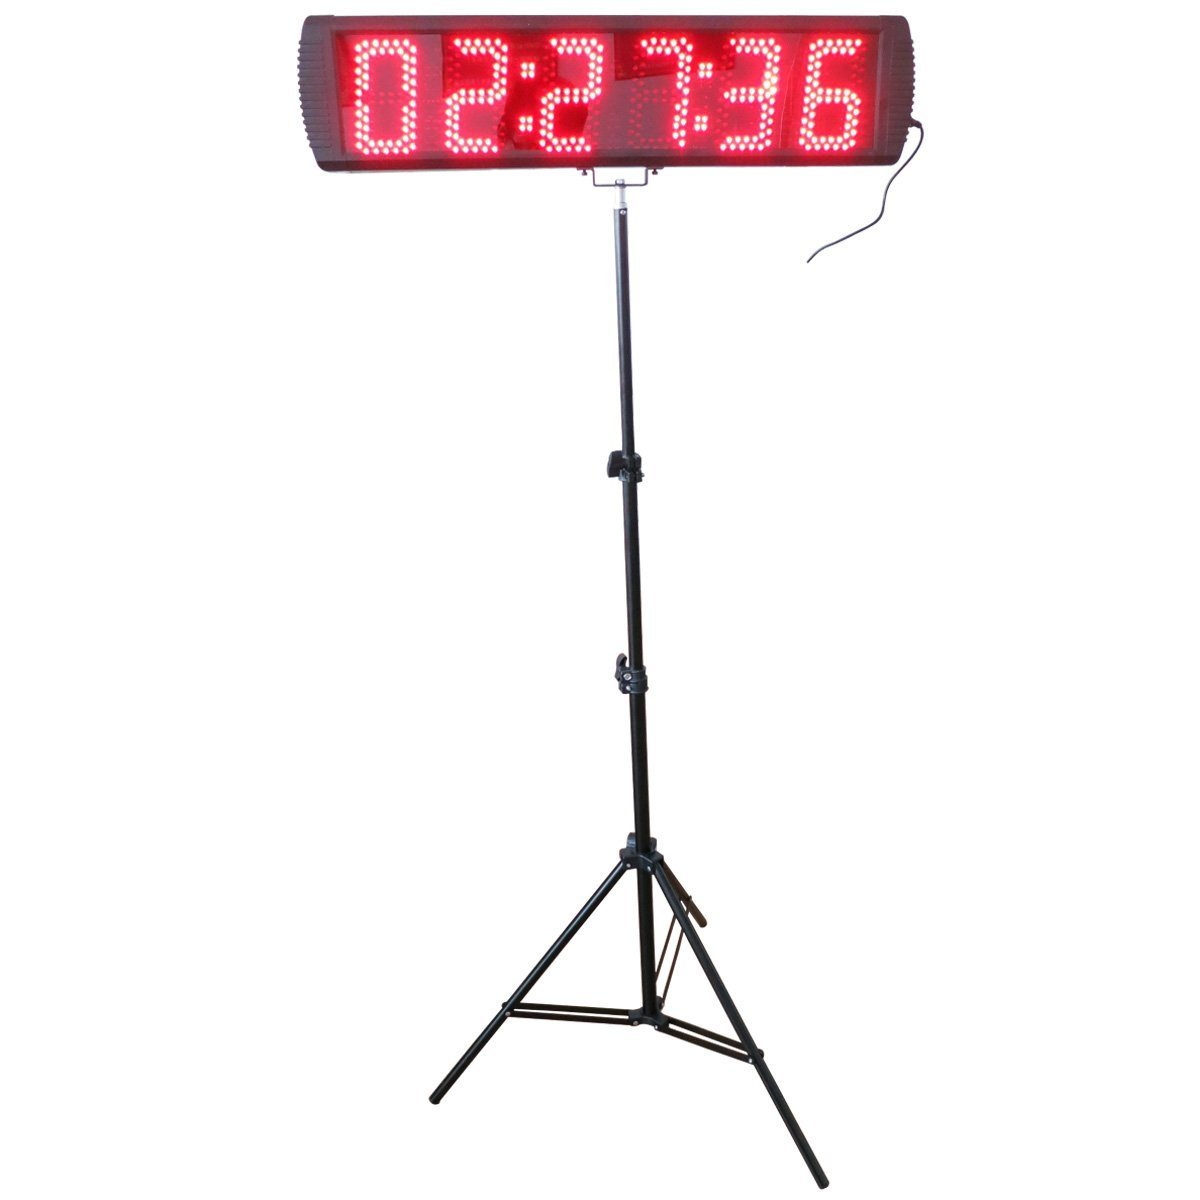 AZOOU Large Red Color LED Race Timing Clock Timer with Tripod 5-inch High Character for Semi-outdoor/Outdoor Running Events IR Remote Control by AZOOU